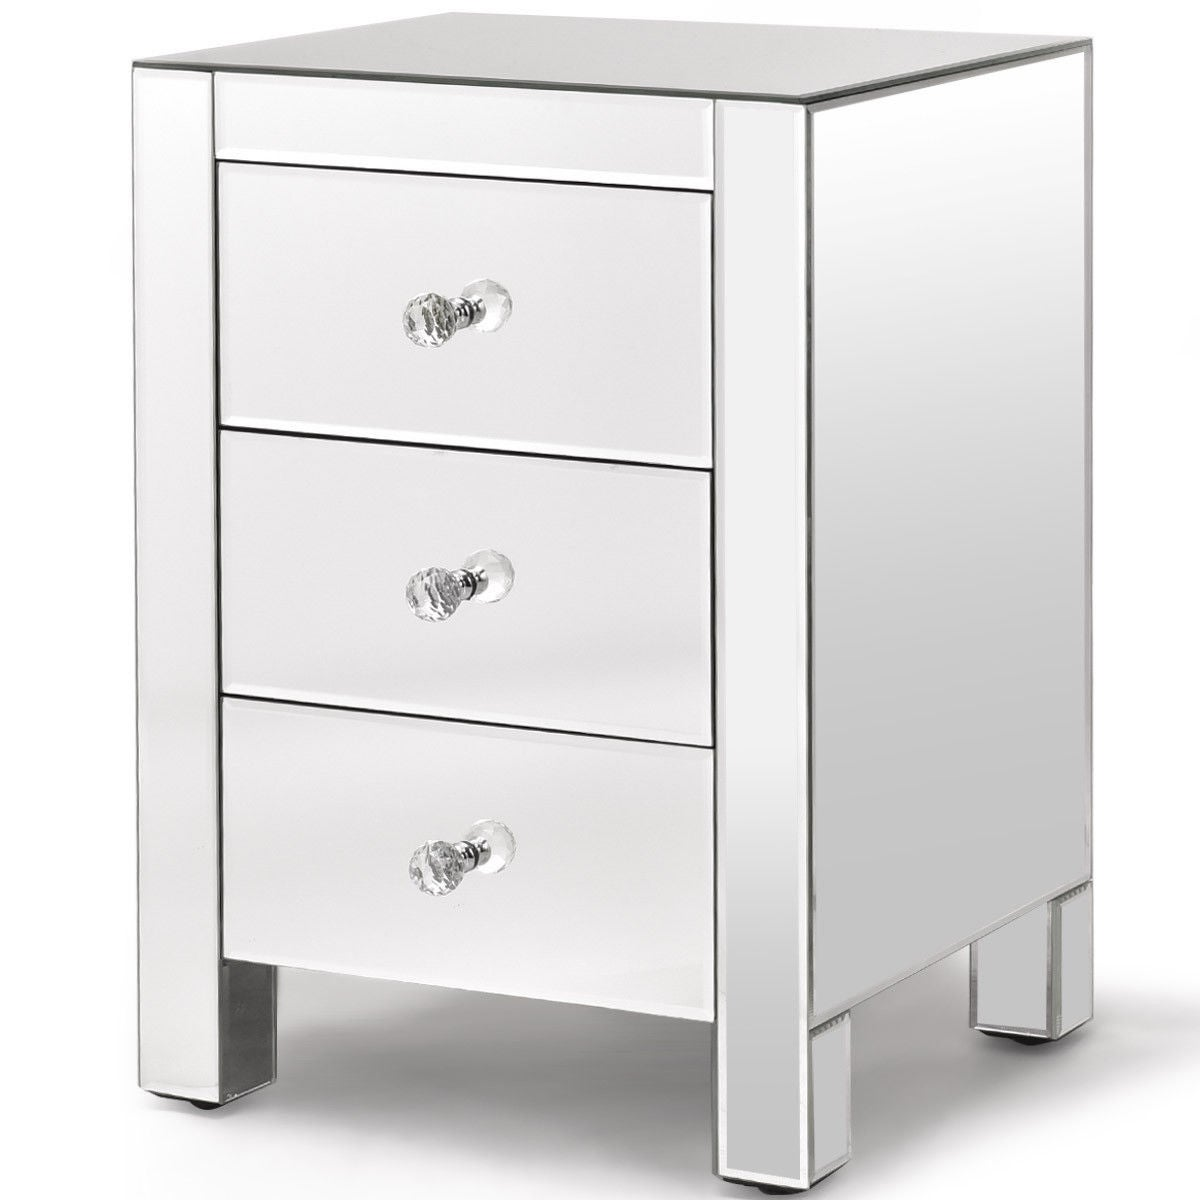 Shop Costway Mirrored Nightstand 3 Drawer Modern Mirror End Table Storage  Accent Cabinet   Free Shipping Today   Overstock.com   21010004